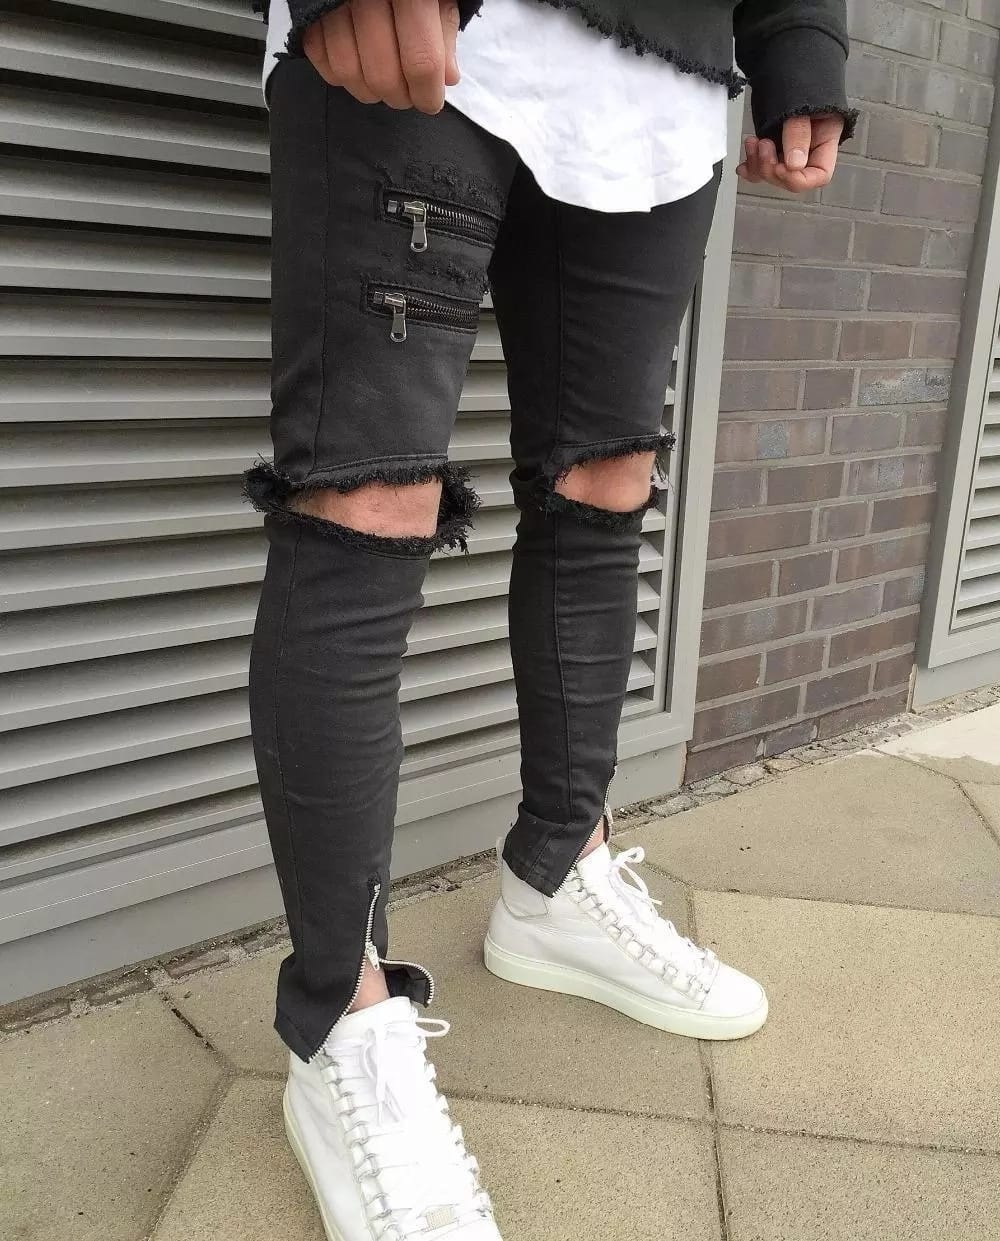 How to choose ripped jeans for men?